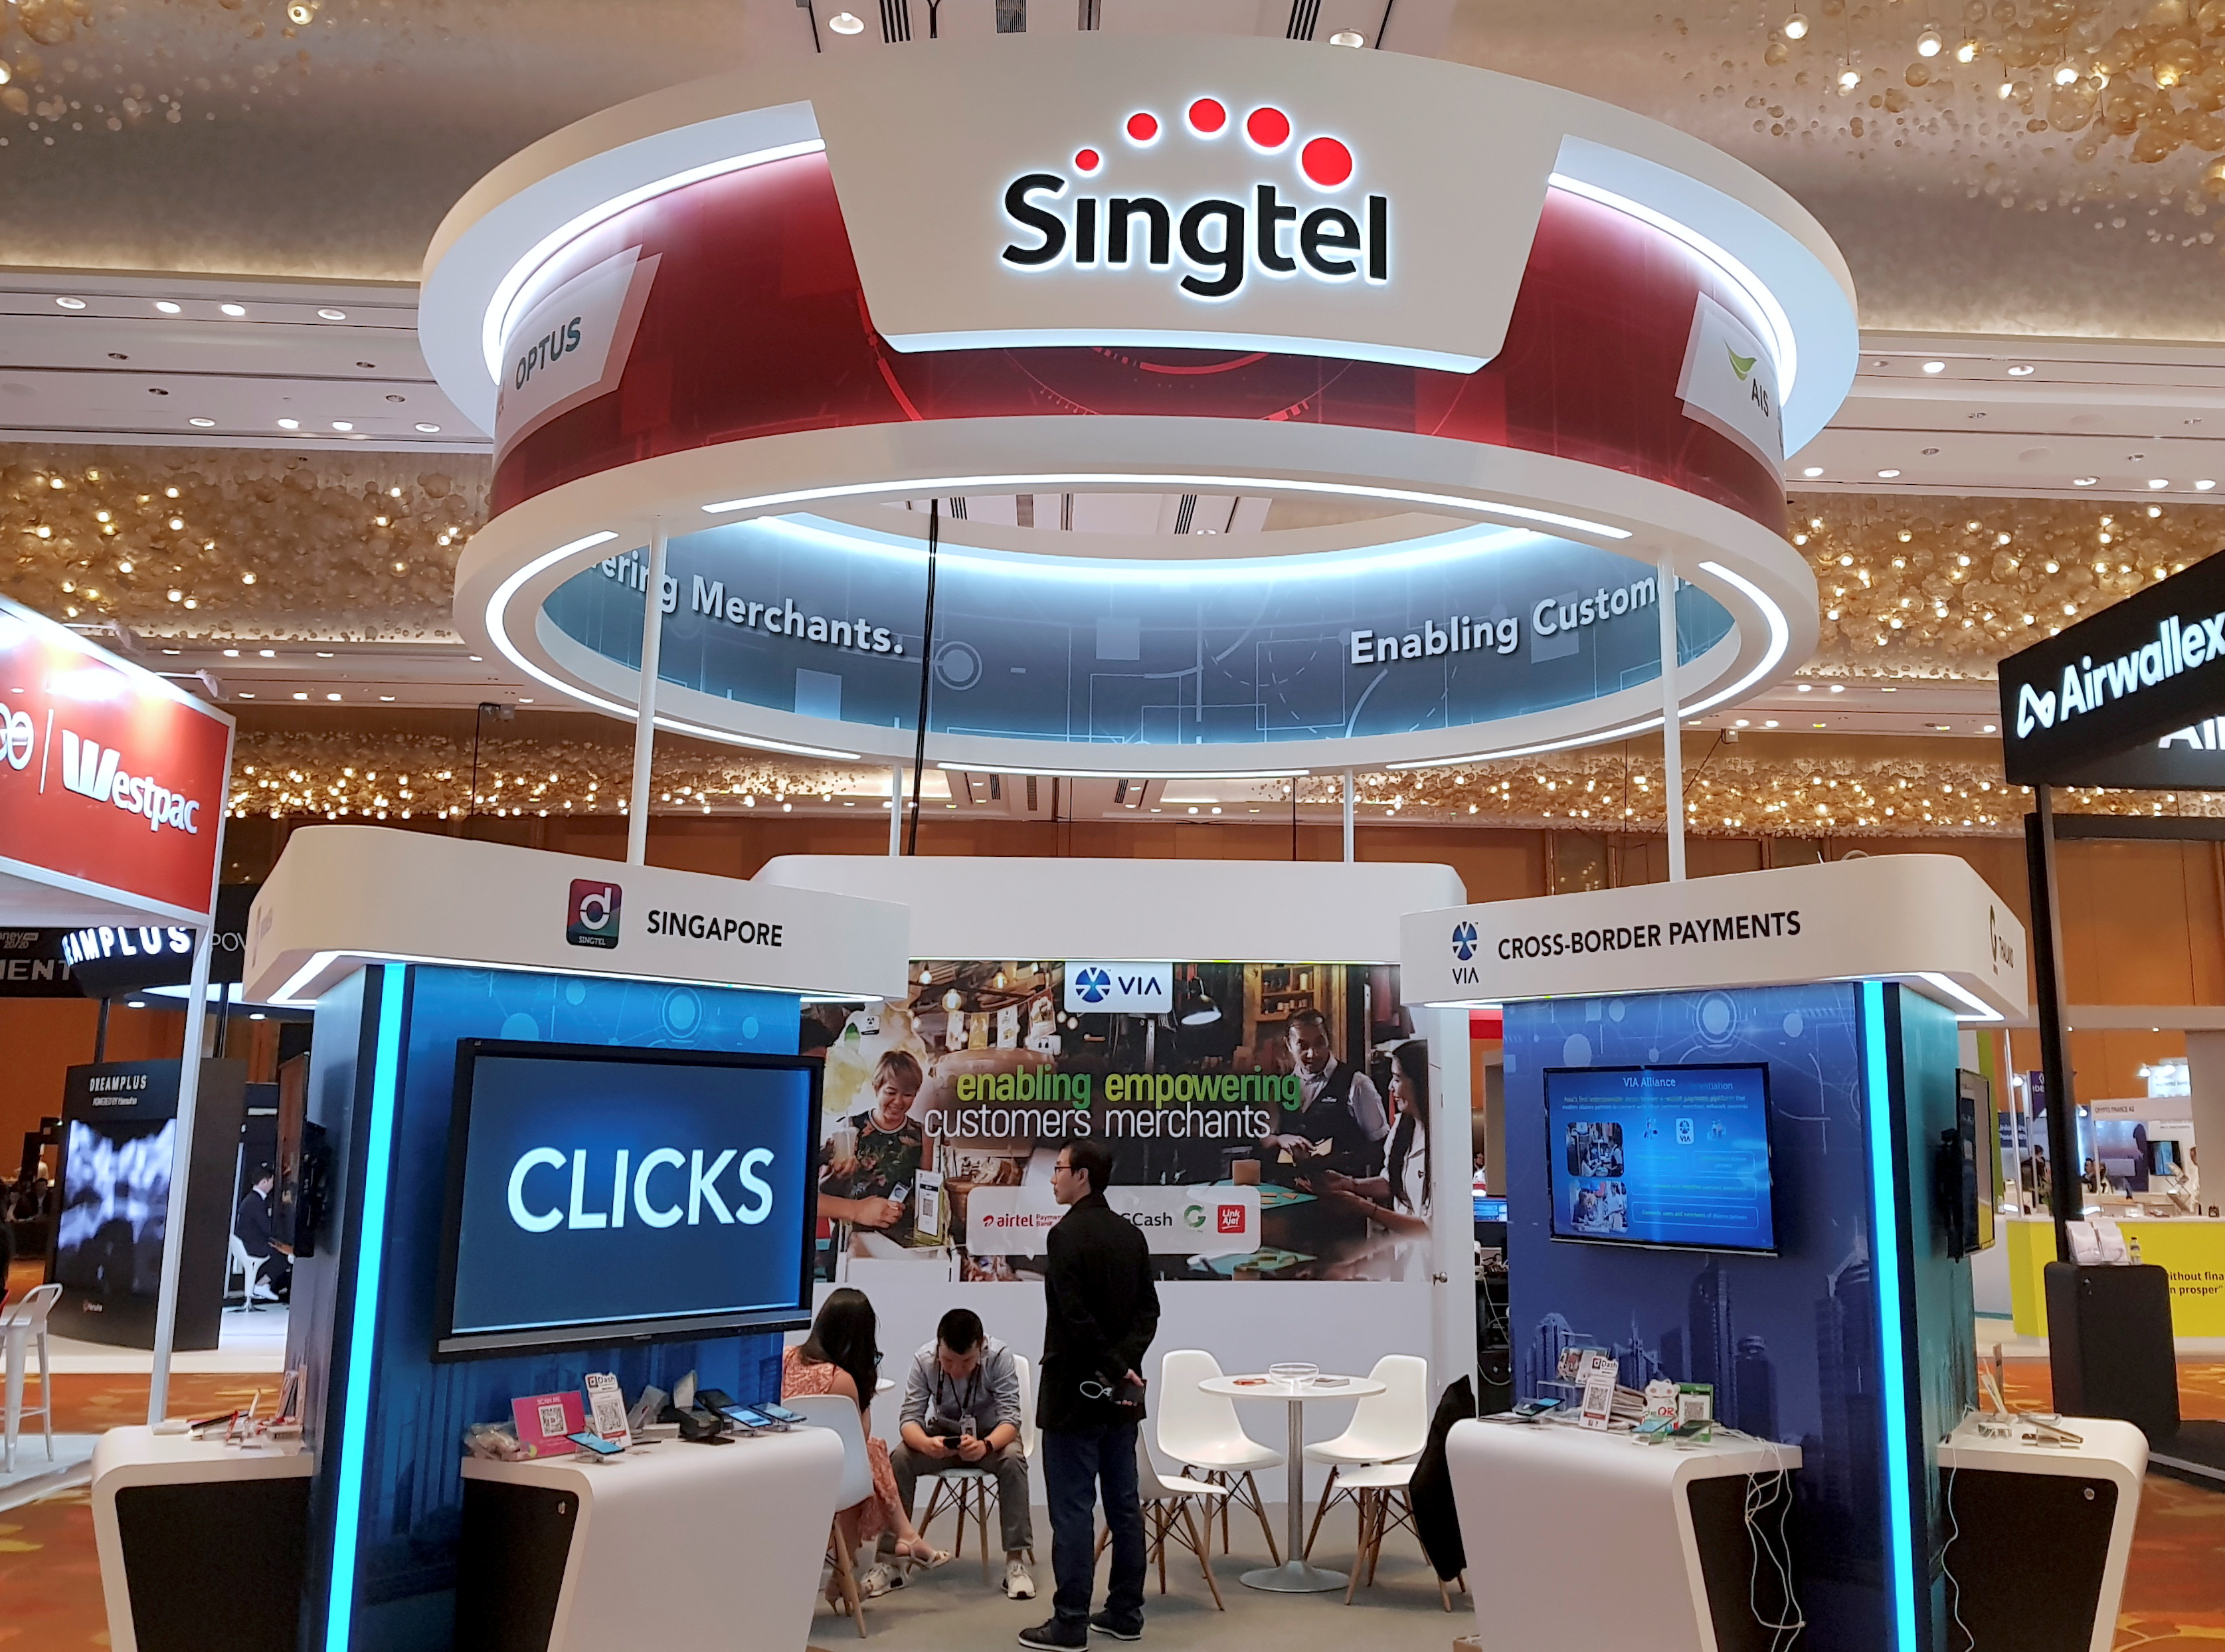 A Singtel booth is pictured at the Money 20/20 Asia Fintech Trade Show in Singapore March 21, 2019. Picture taken March 21, 2019. REUTERS/Anshuman Daga